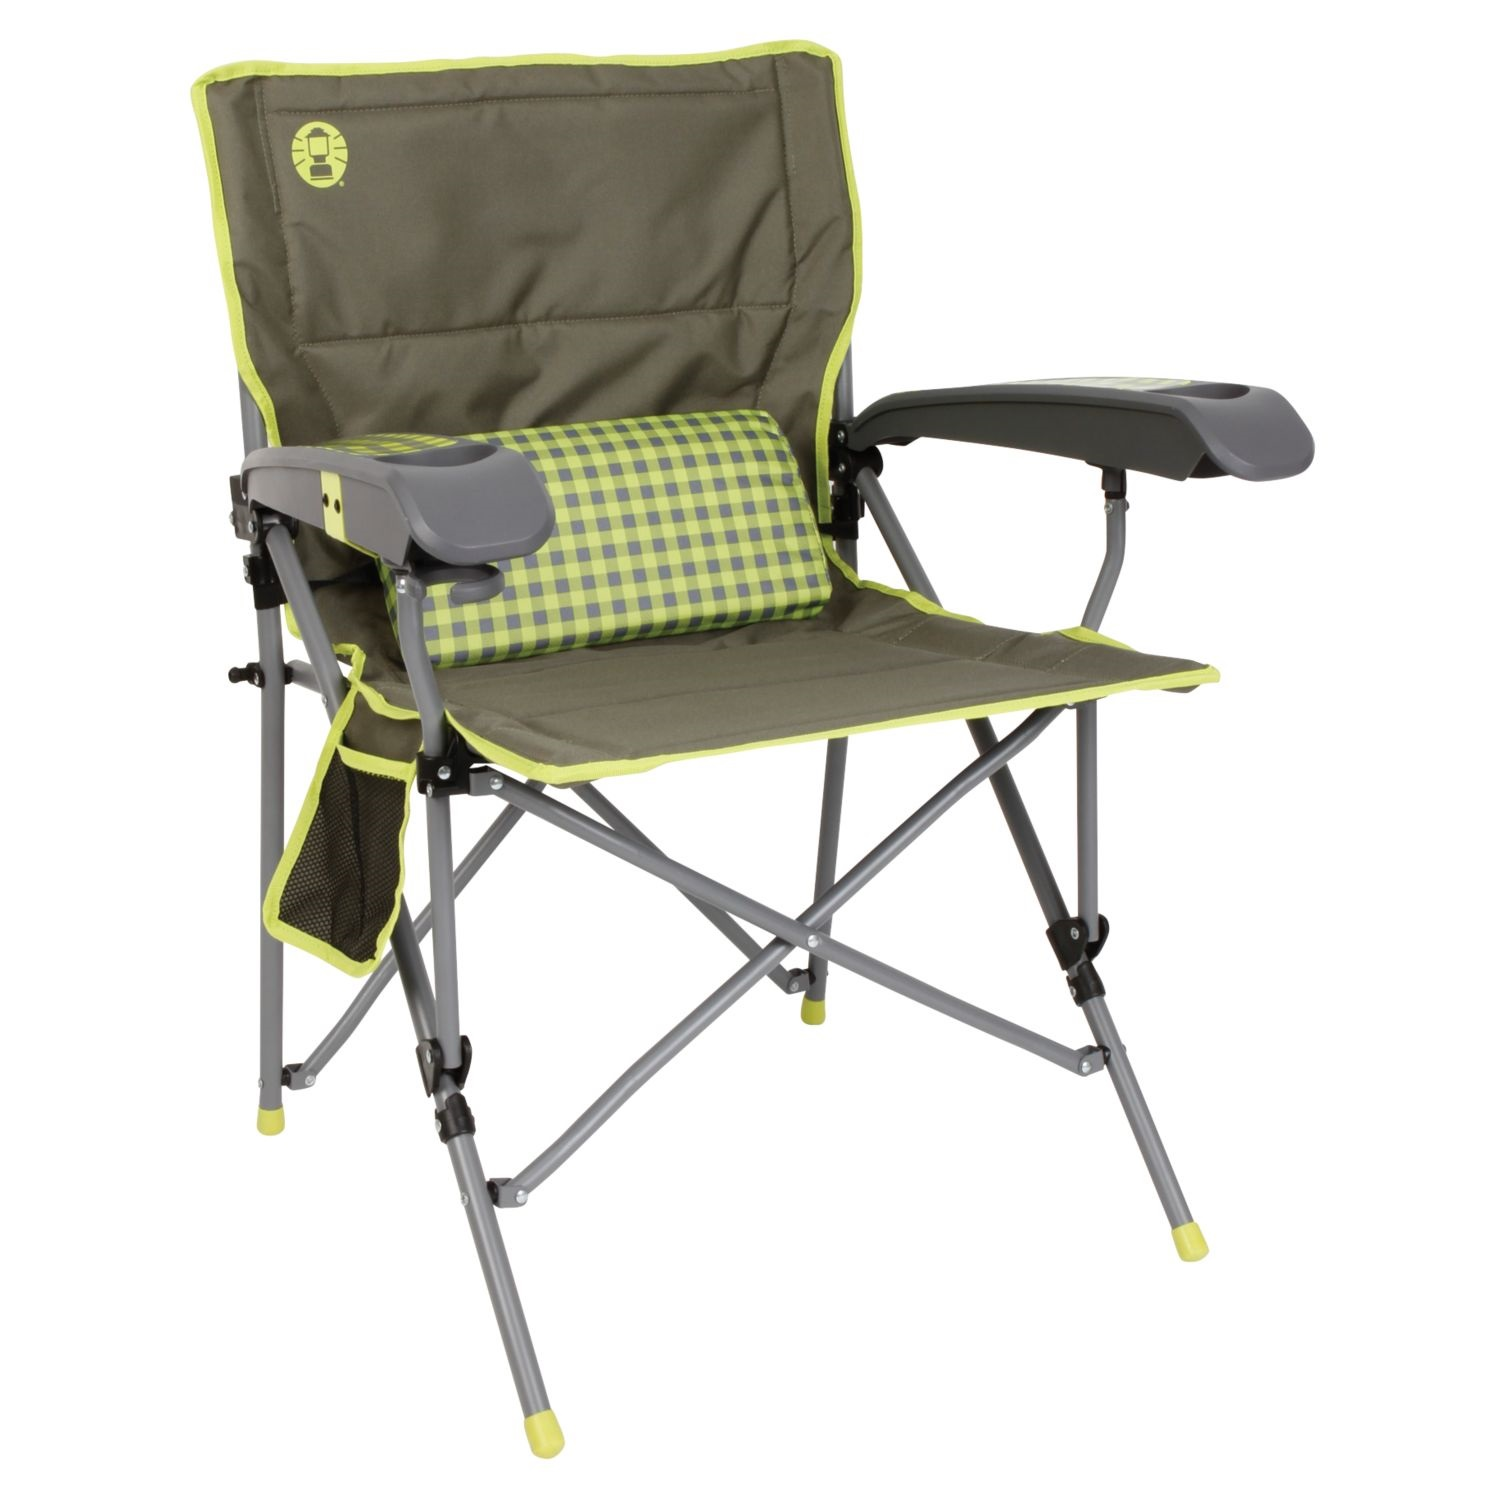 vision fishing chair outdoor rocking cushions lowes coleman vertex ultra hard arm best lime check